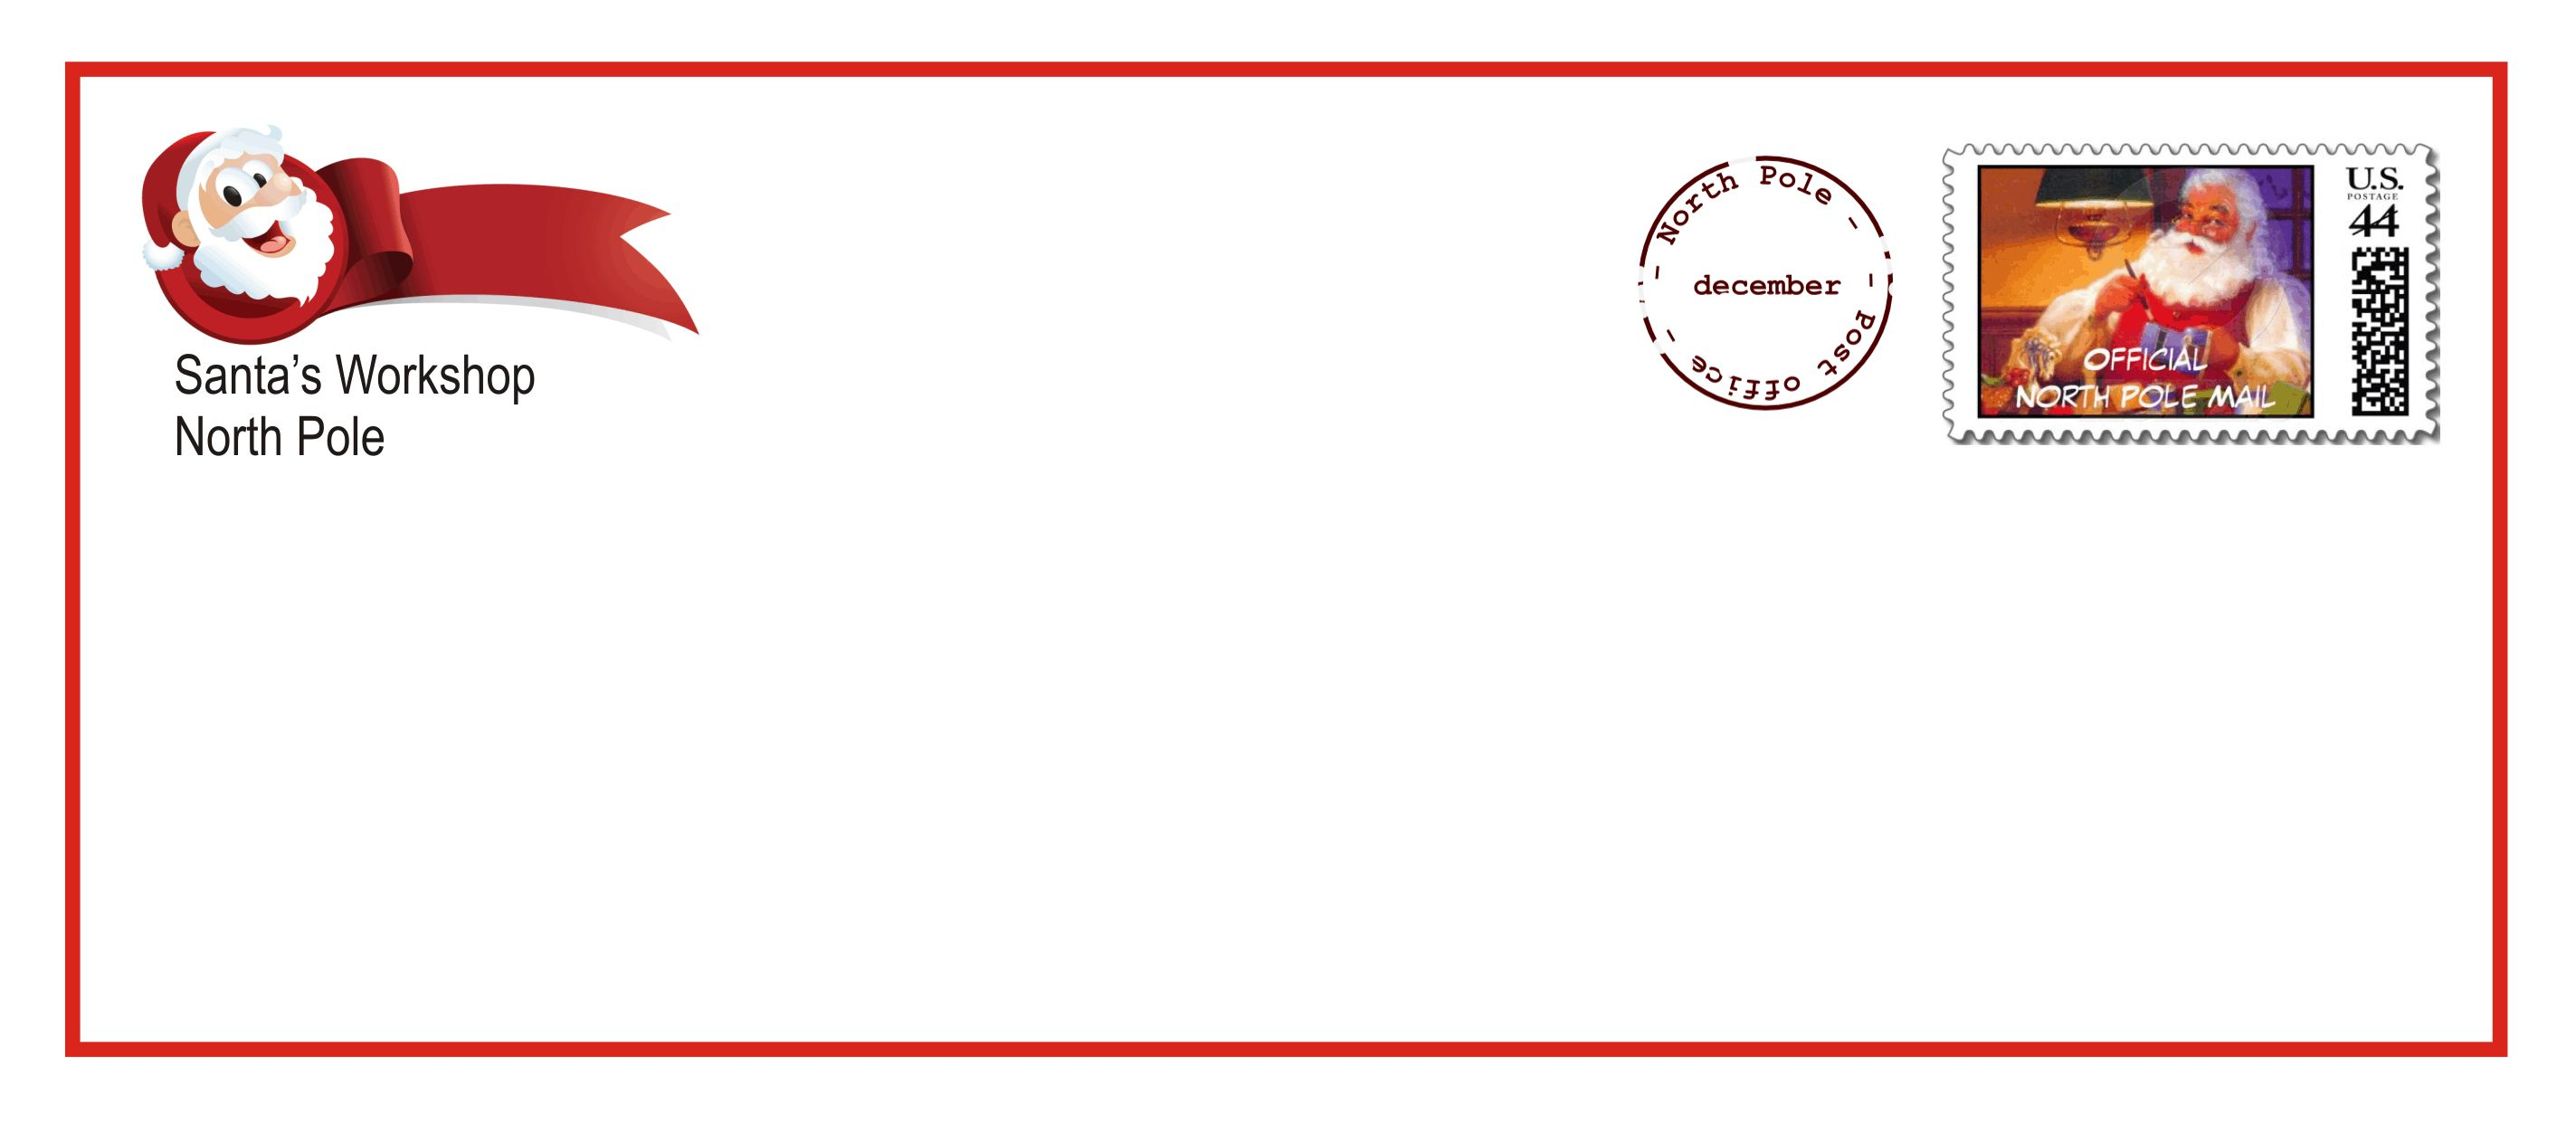 North Pole Letter Template - Printable Santa Letter Envelopes that E with the Upgraded Letter